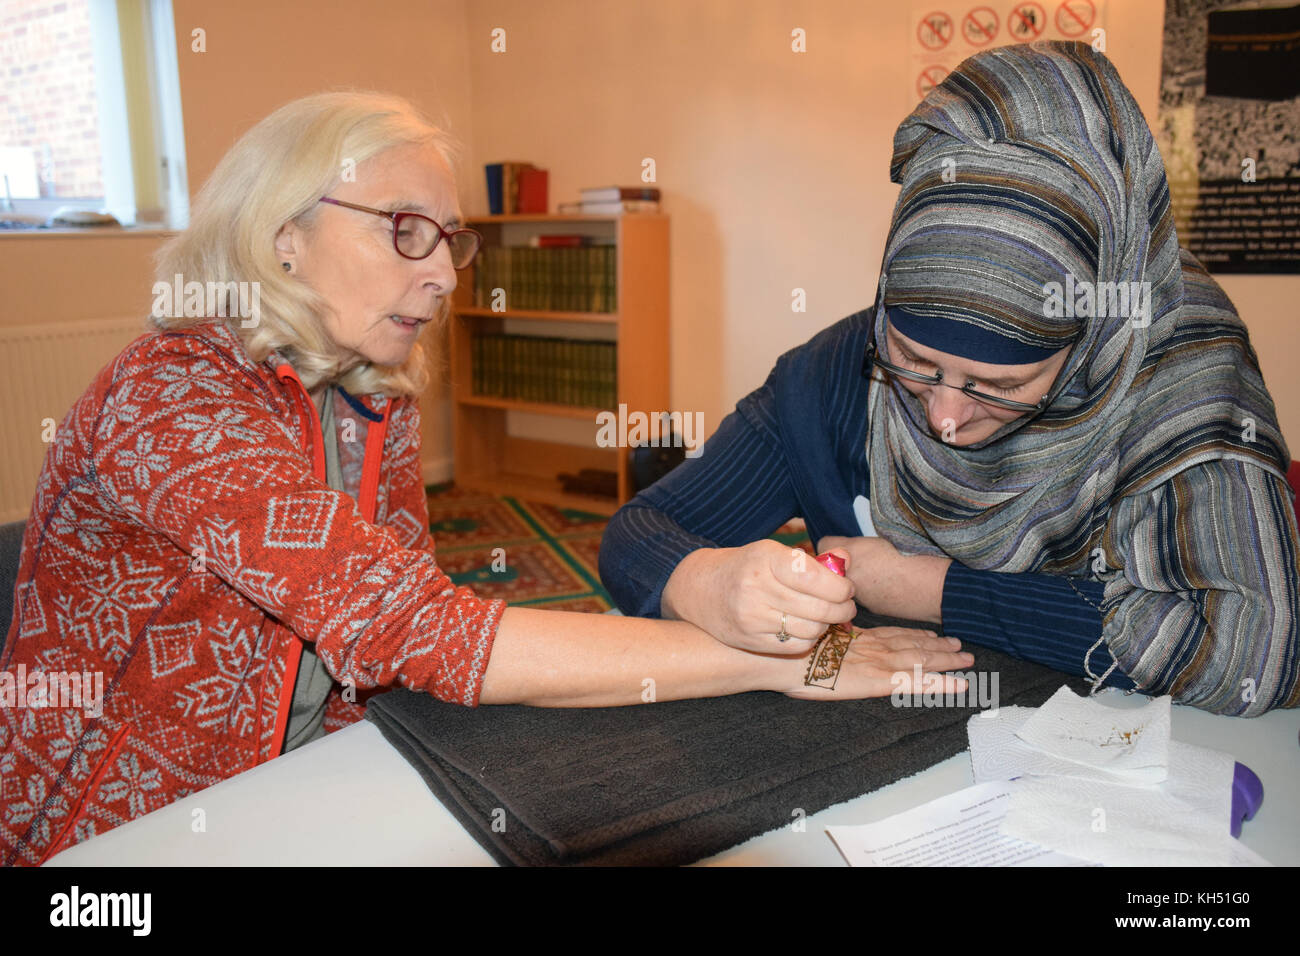 Norwich, UK, 11 November 2017. Open Day at the Rose Lane Mosque, Norwich. Henna tattoo painting. This communal event - Stock Image